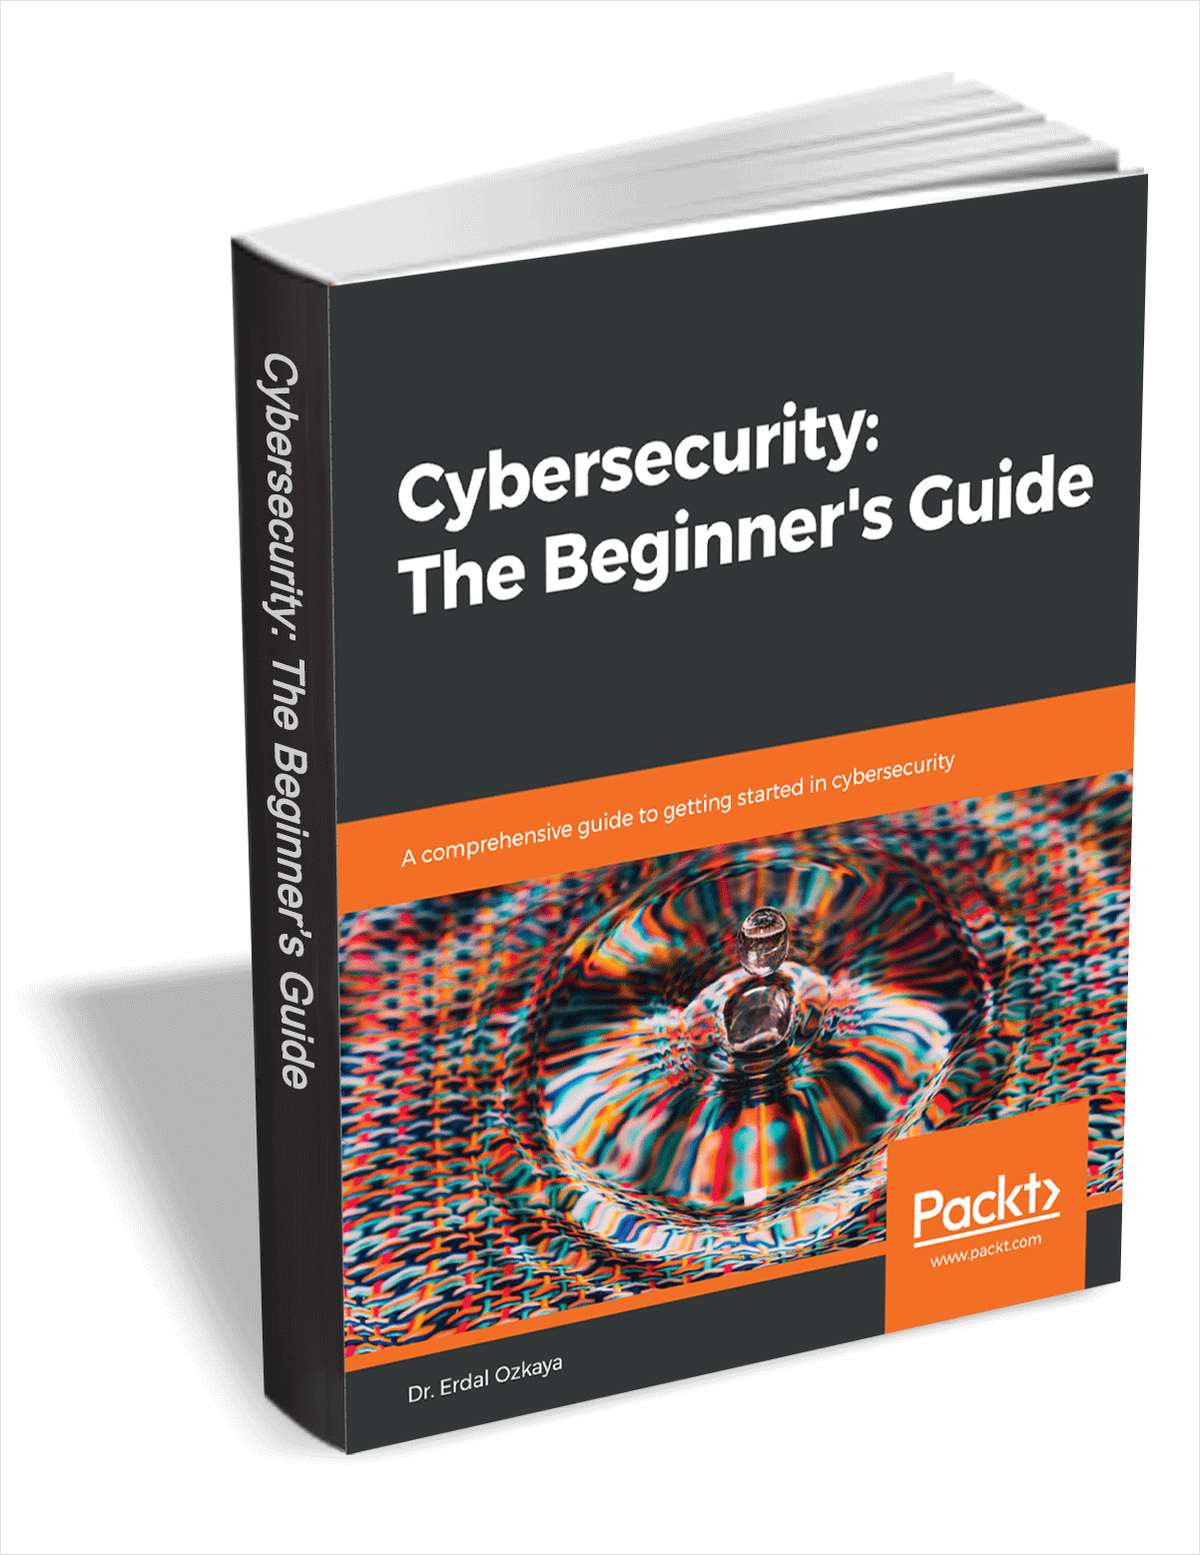 Cybersecurity: The Beginner's Guide ($23.99 Value) FREE for a Limited Time